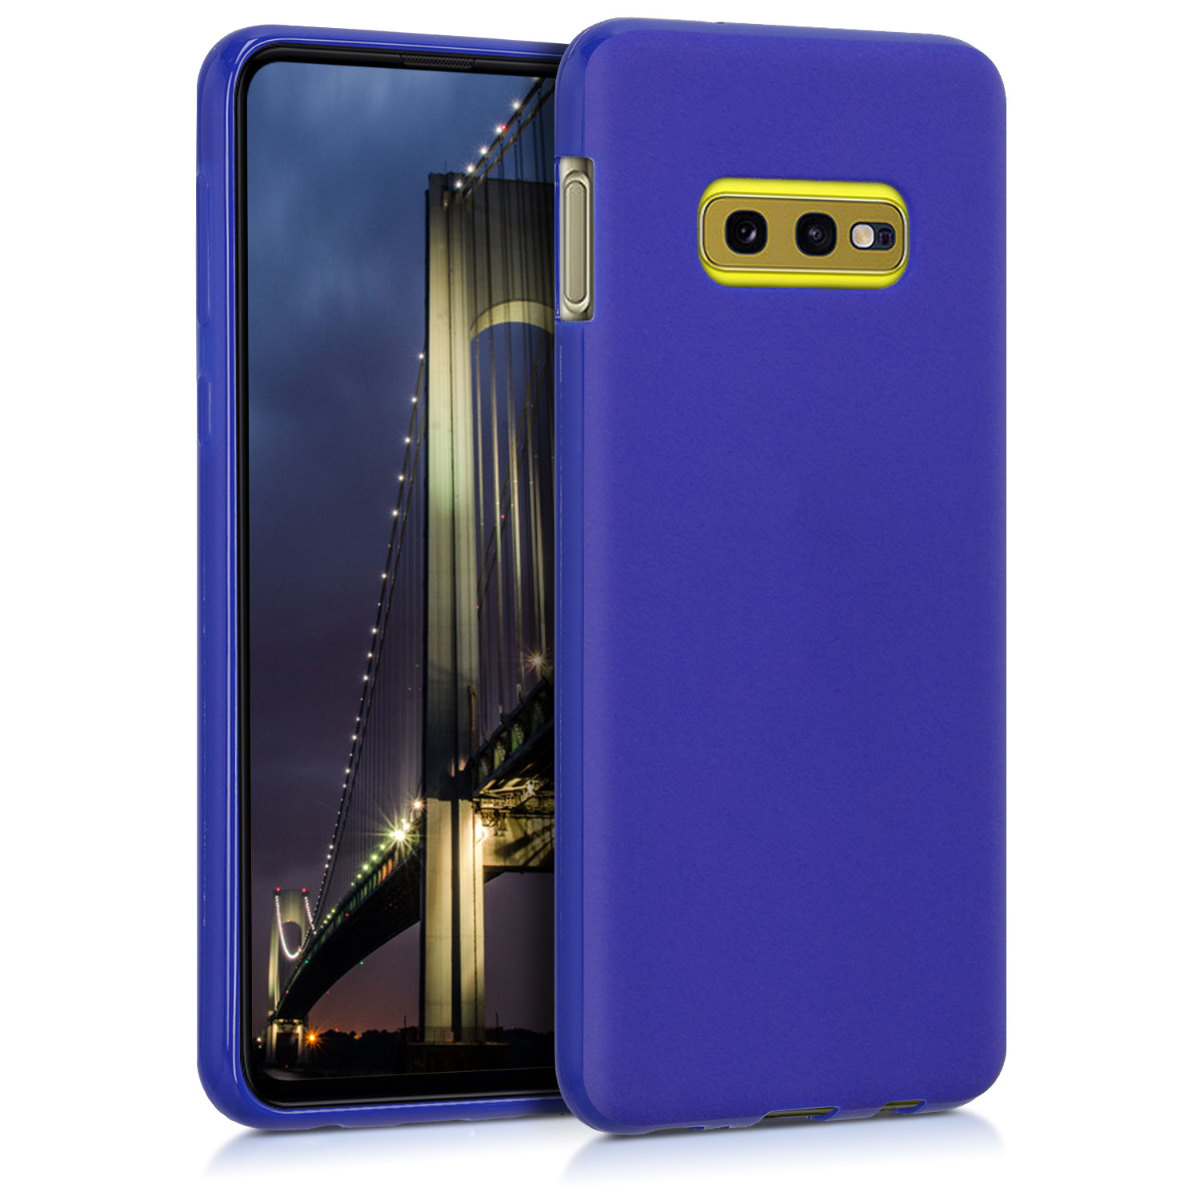 KW Θήκη Σιλικόνης Samsung Galaxy S10e - Soft Flexible Shock Absorbent Protective Phone Cover - Royal Blue (47574.134)